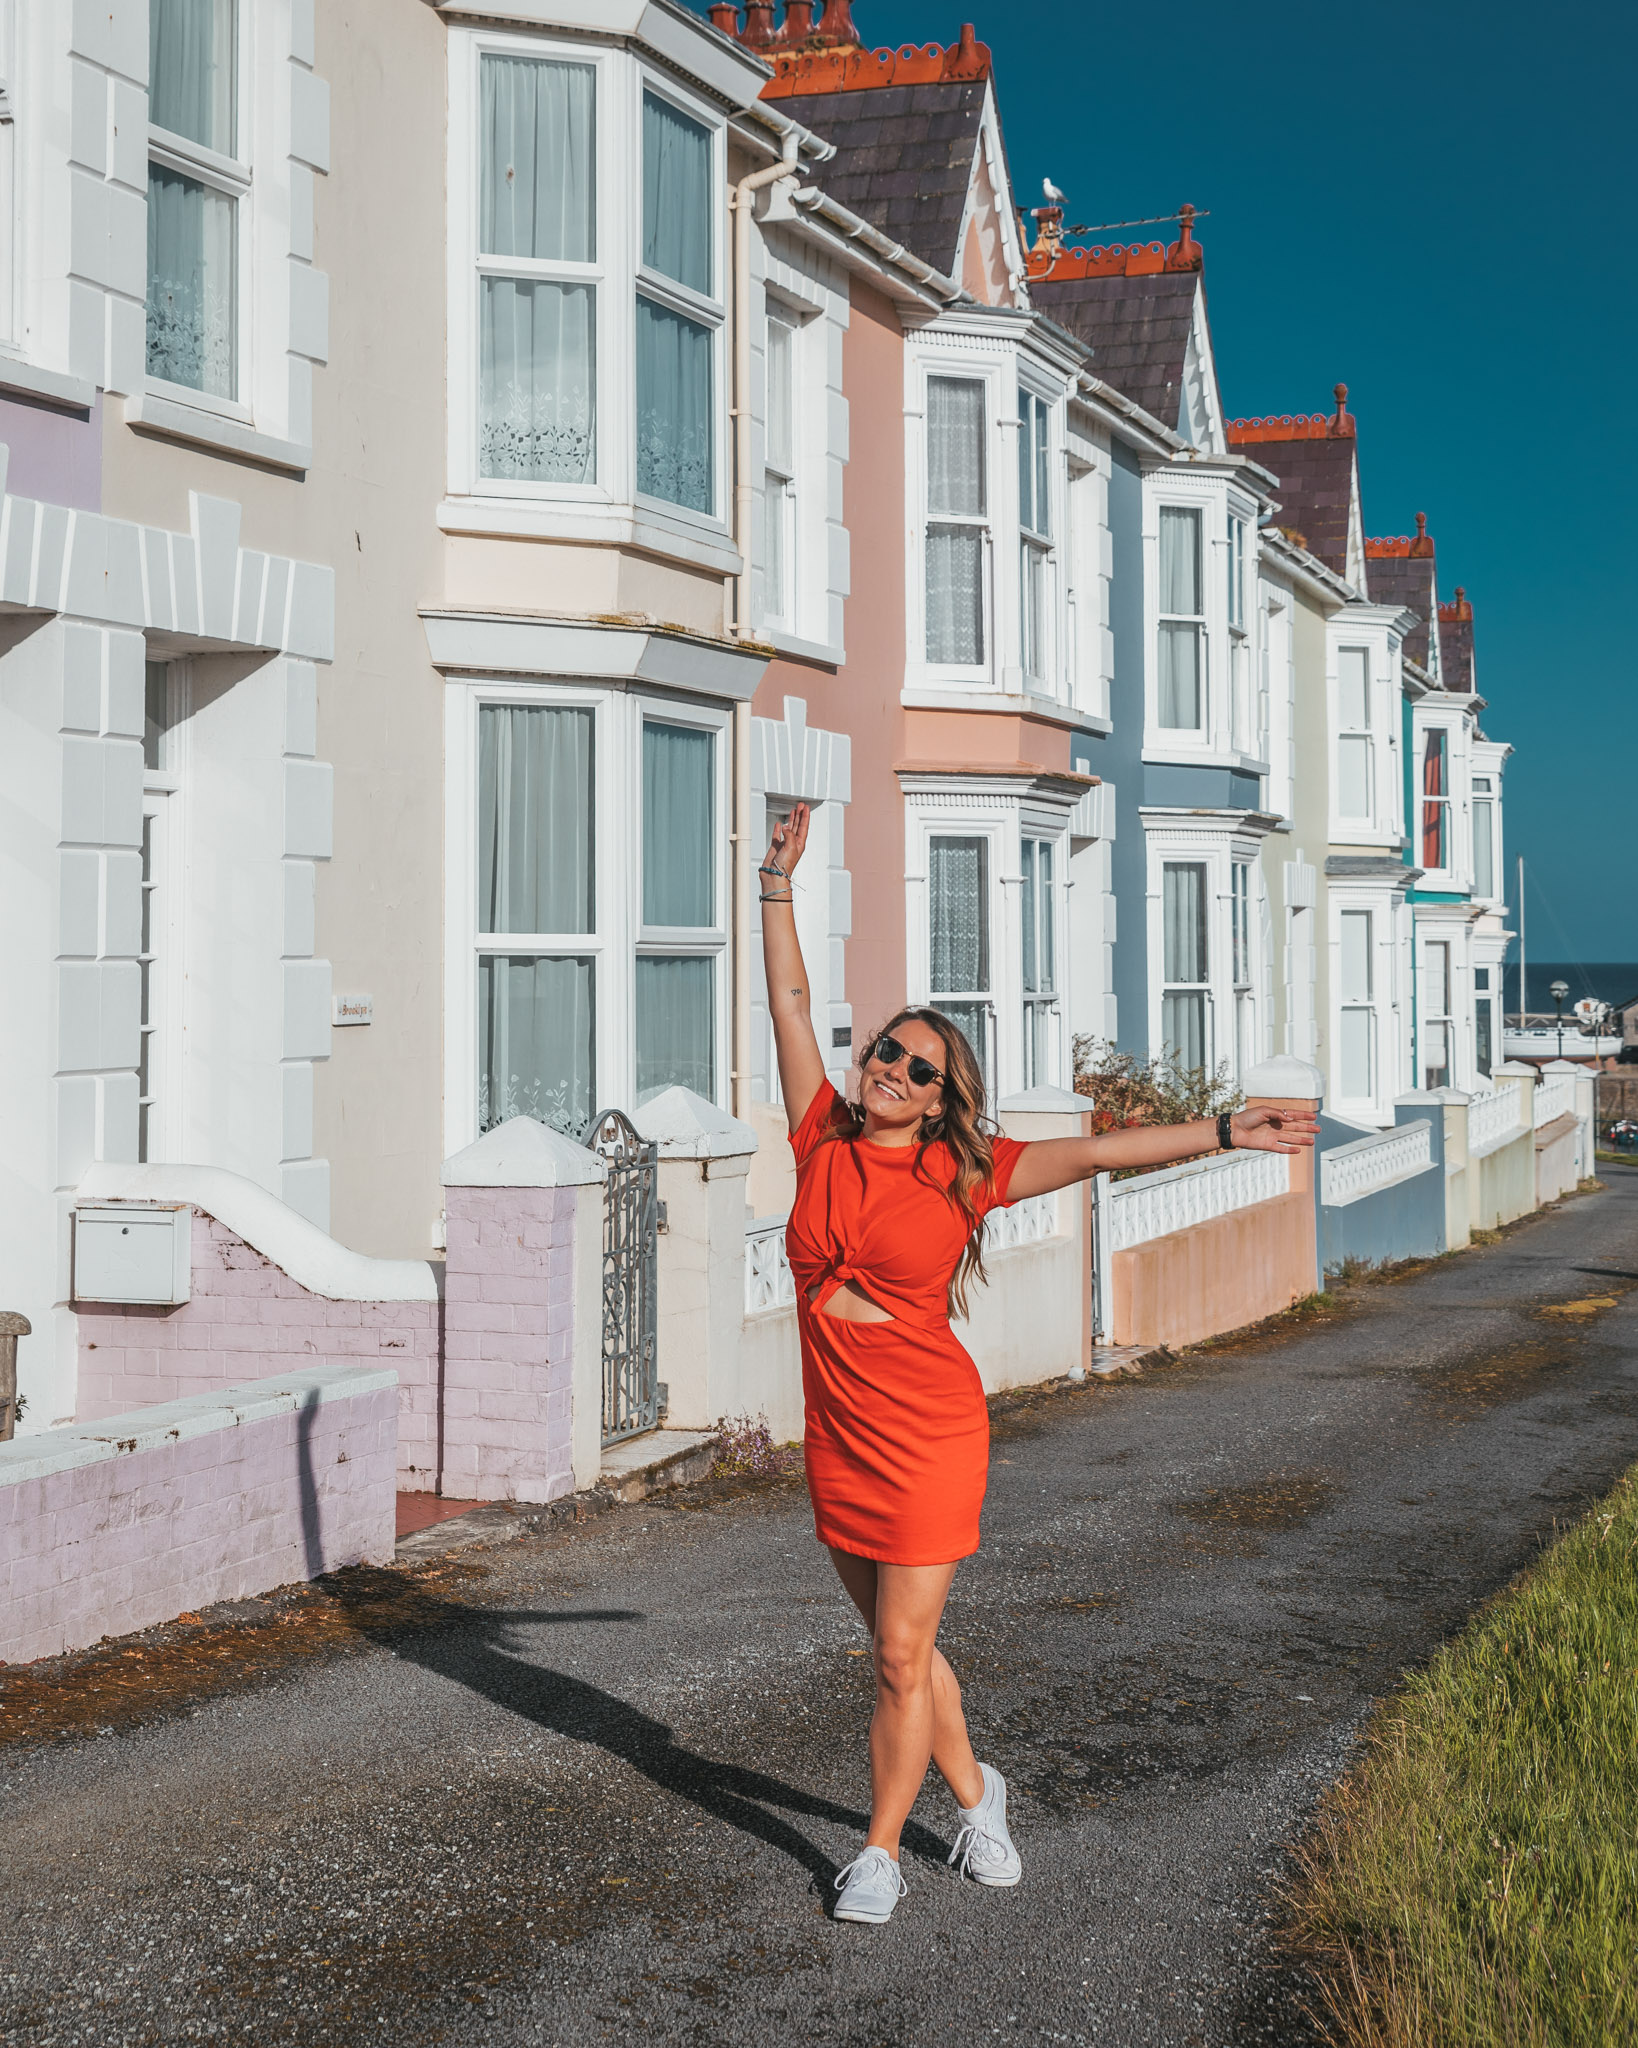 Aberaeron colorful houses // The Most Beautiful Places to Visit in Wales // #readysetjetset #wales #uk #welsh #travel #photospots #blogpost